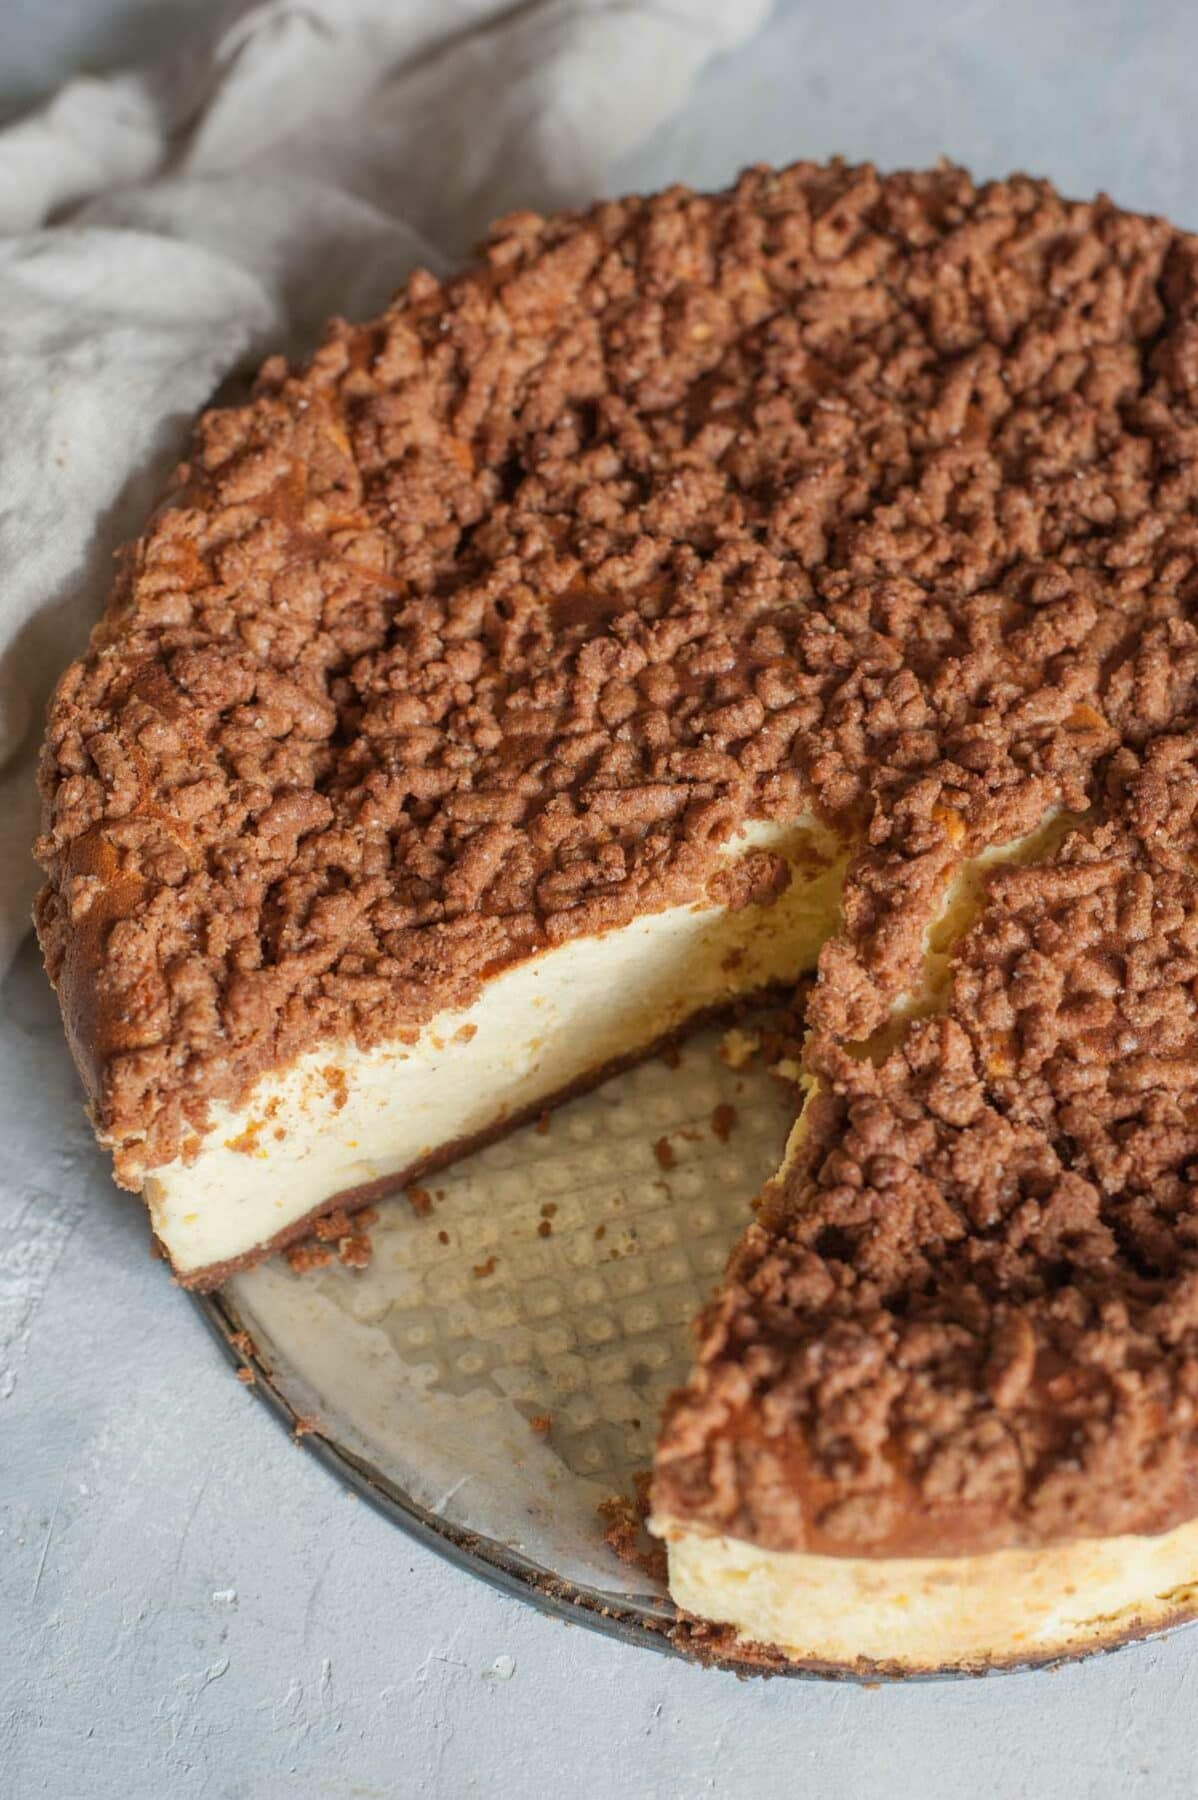 Polish cheesecake with a piece missing on a table.